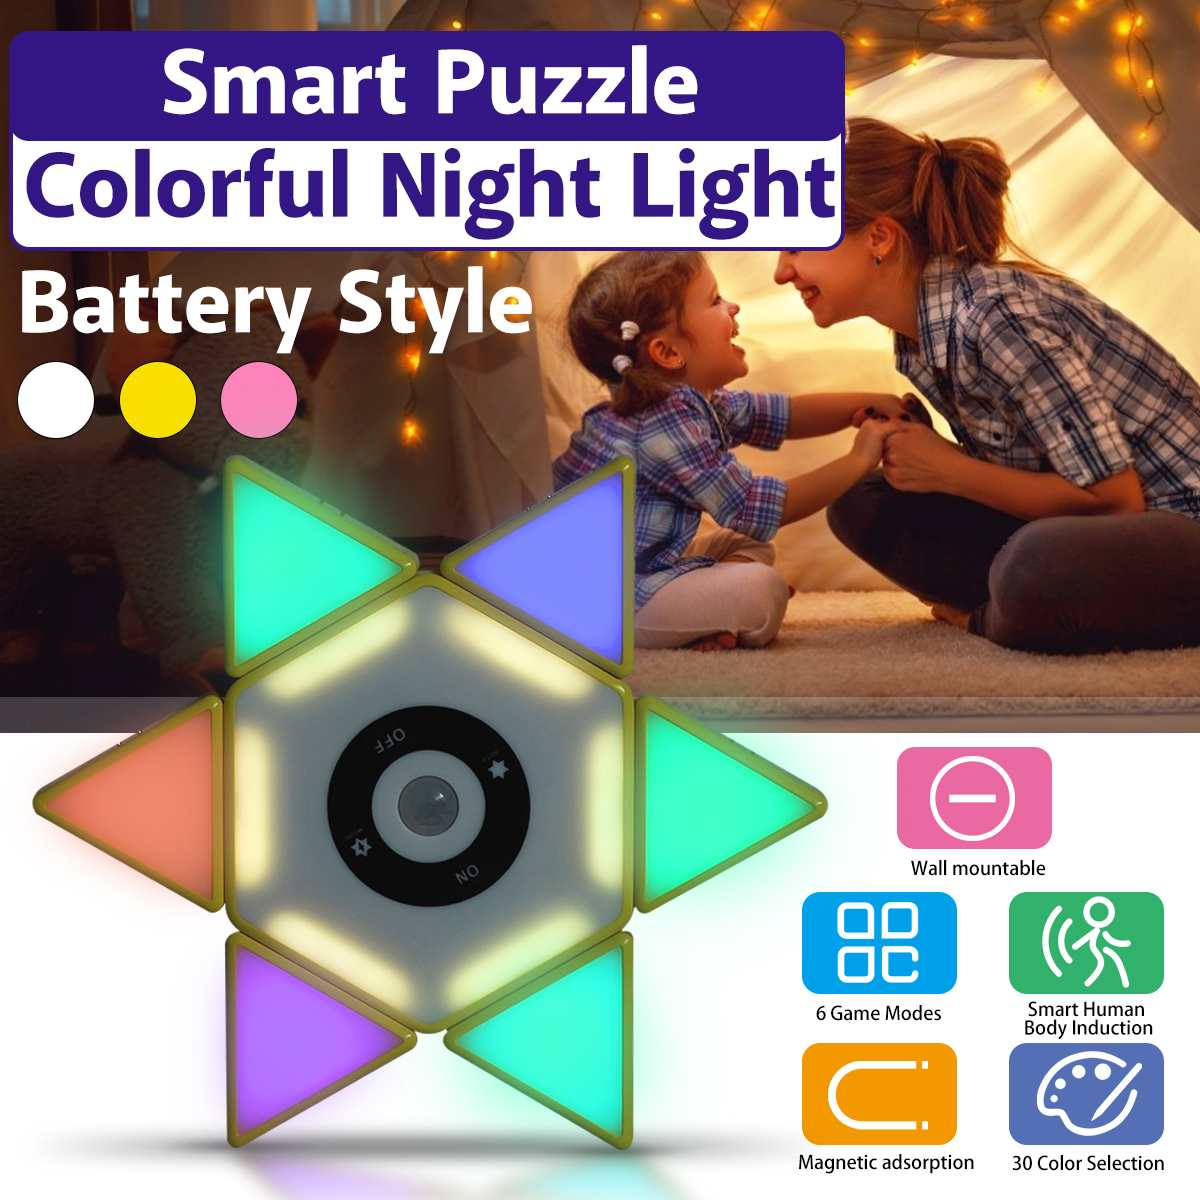 New Colorful Night Light Smart Puzzle Colorful Night Light Induction Light Decoration Wall Lamp For DIY Tetris Puzzle Light